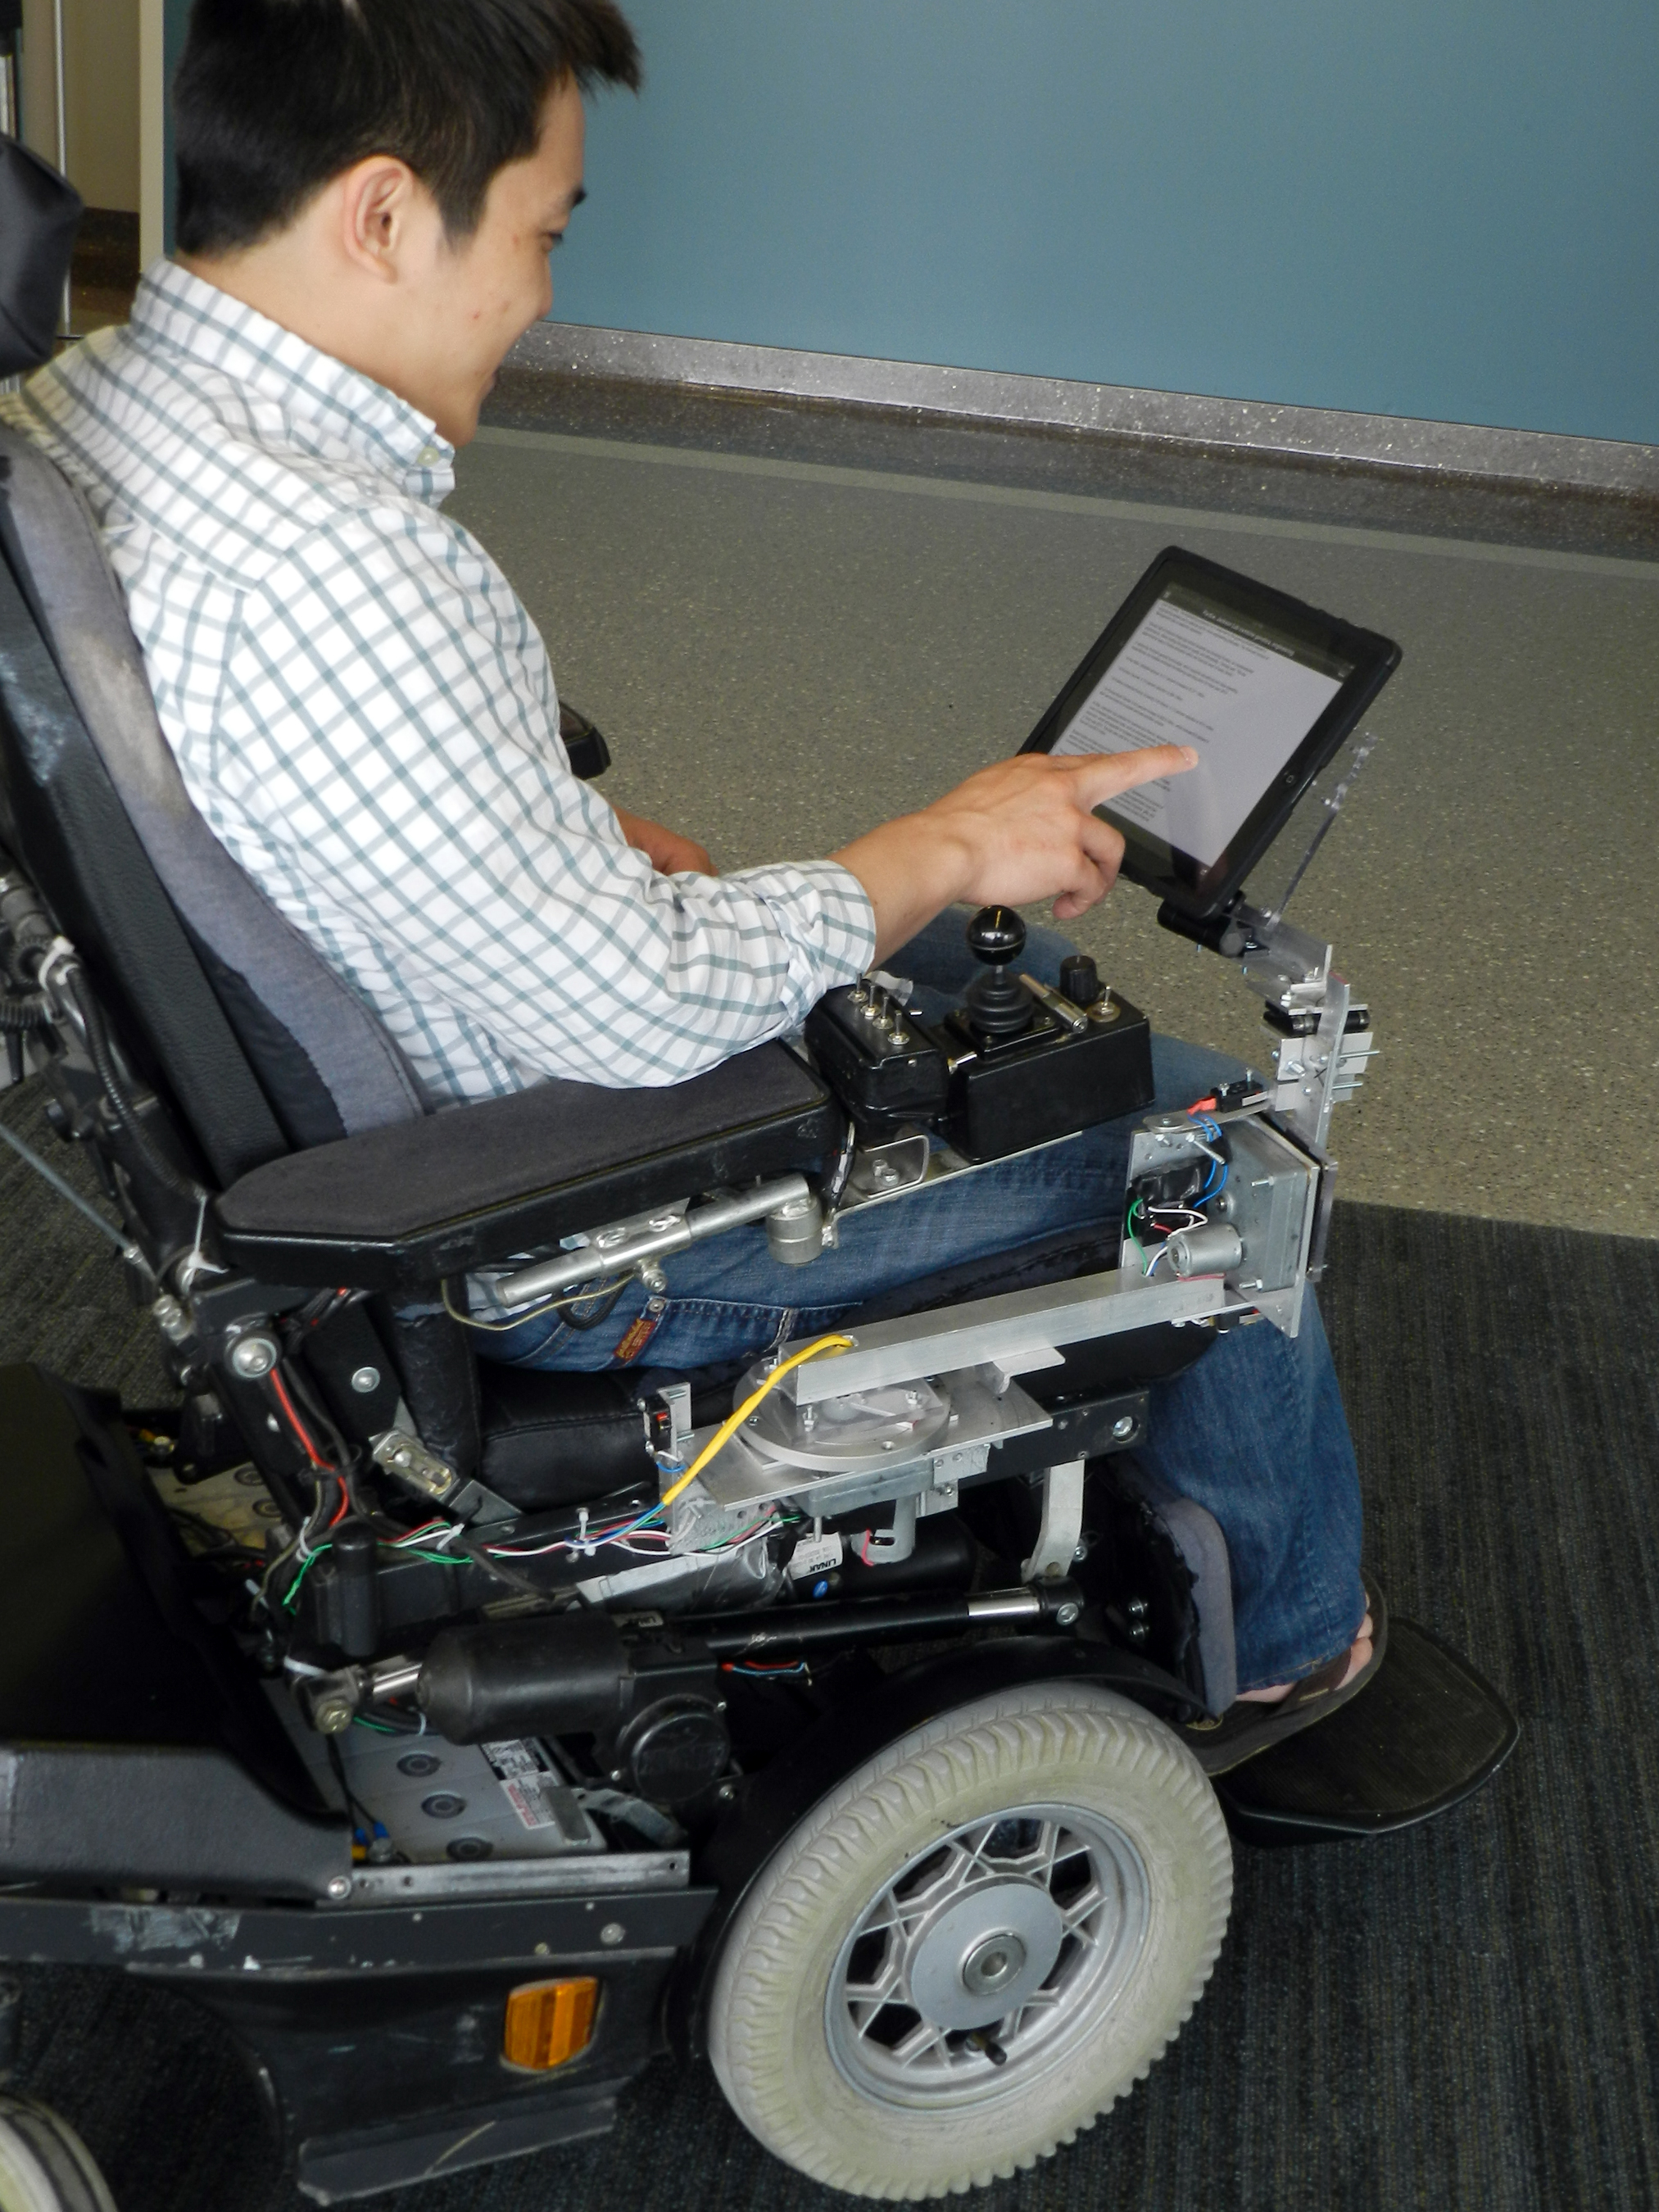 Assistive Wheelchair Tray Could Help People With Disabilities Use